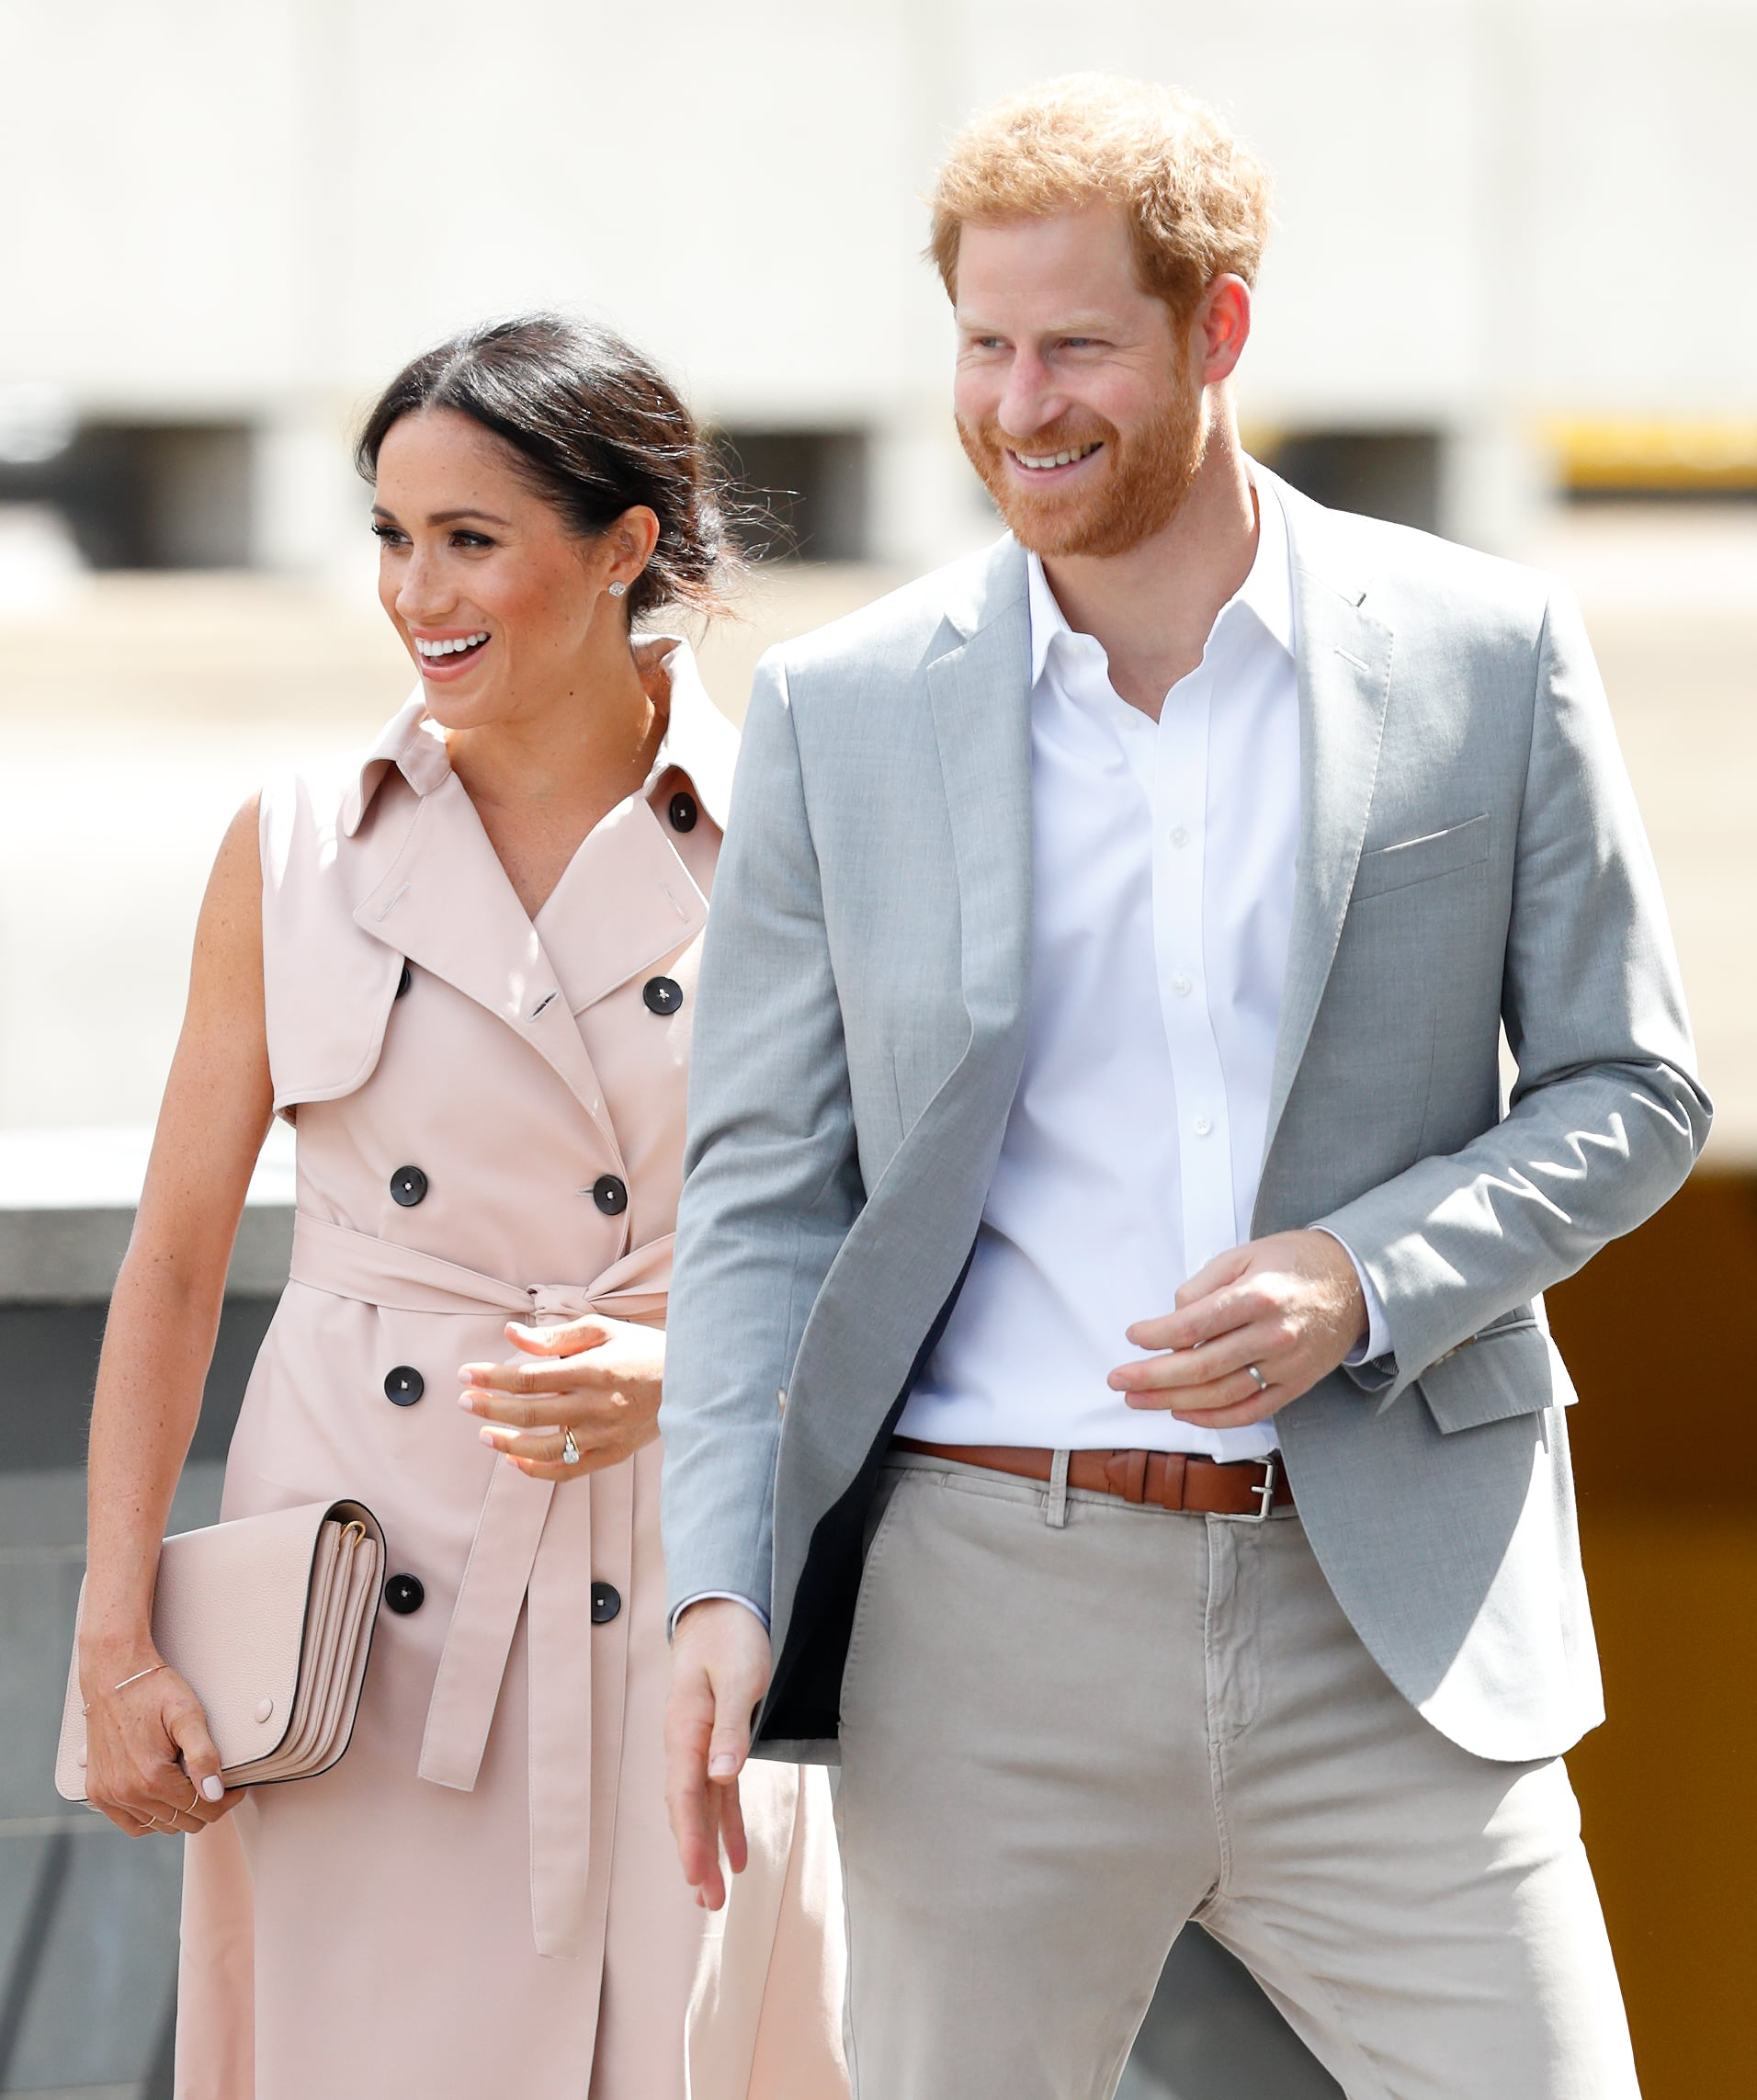 LONDON, UNITED KINGDOM - JULY 17: (EMBARGOED FOR PUBLICATION IN UK NEWSPAPERS UNTIL 24 HOURS AFTER CREATE DATE AND TIME) Meghan, Duchess of Sussex and Prince Harry, Duke of Sussex visits The Nelson Mandela Centenary Exhibition at the Southbank Centre on July 17, 2018 in London, England. The exhibition explores the life and times of Nelson Mandela and marks the centenary of his birth. (Photo by Max Mumby/Indigo/Getty Images)